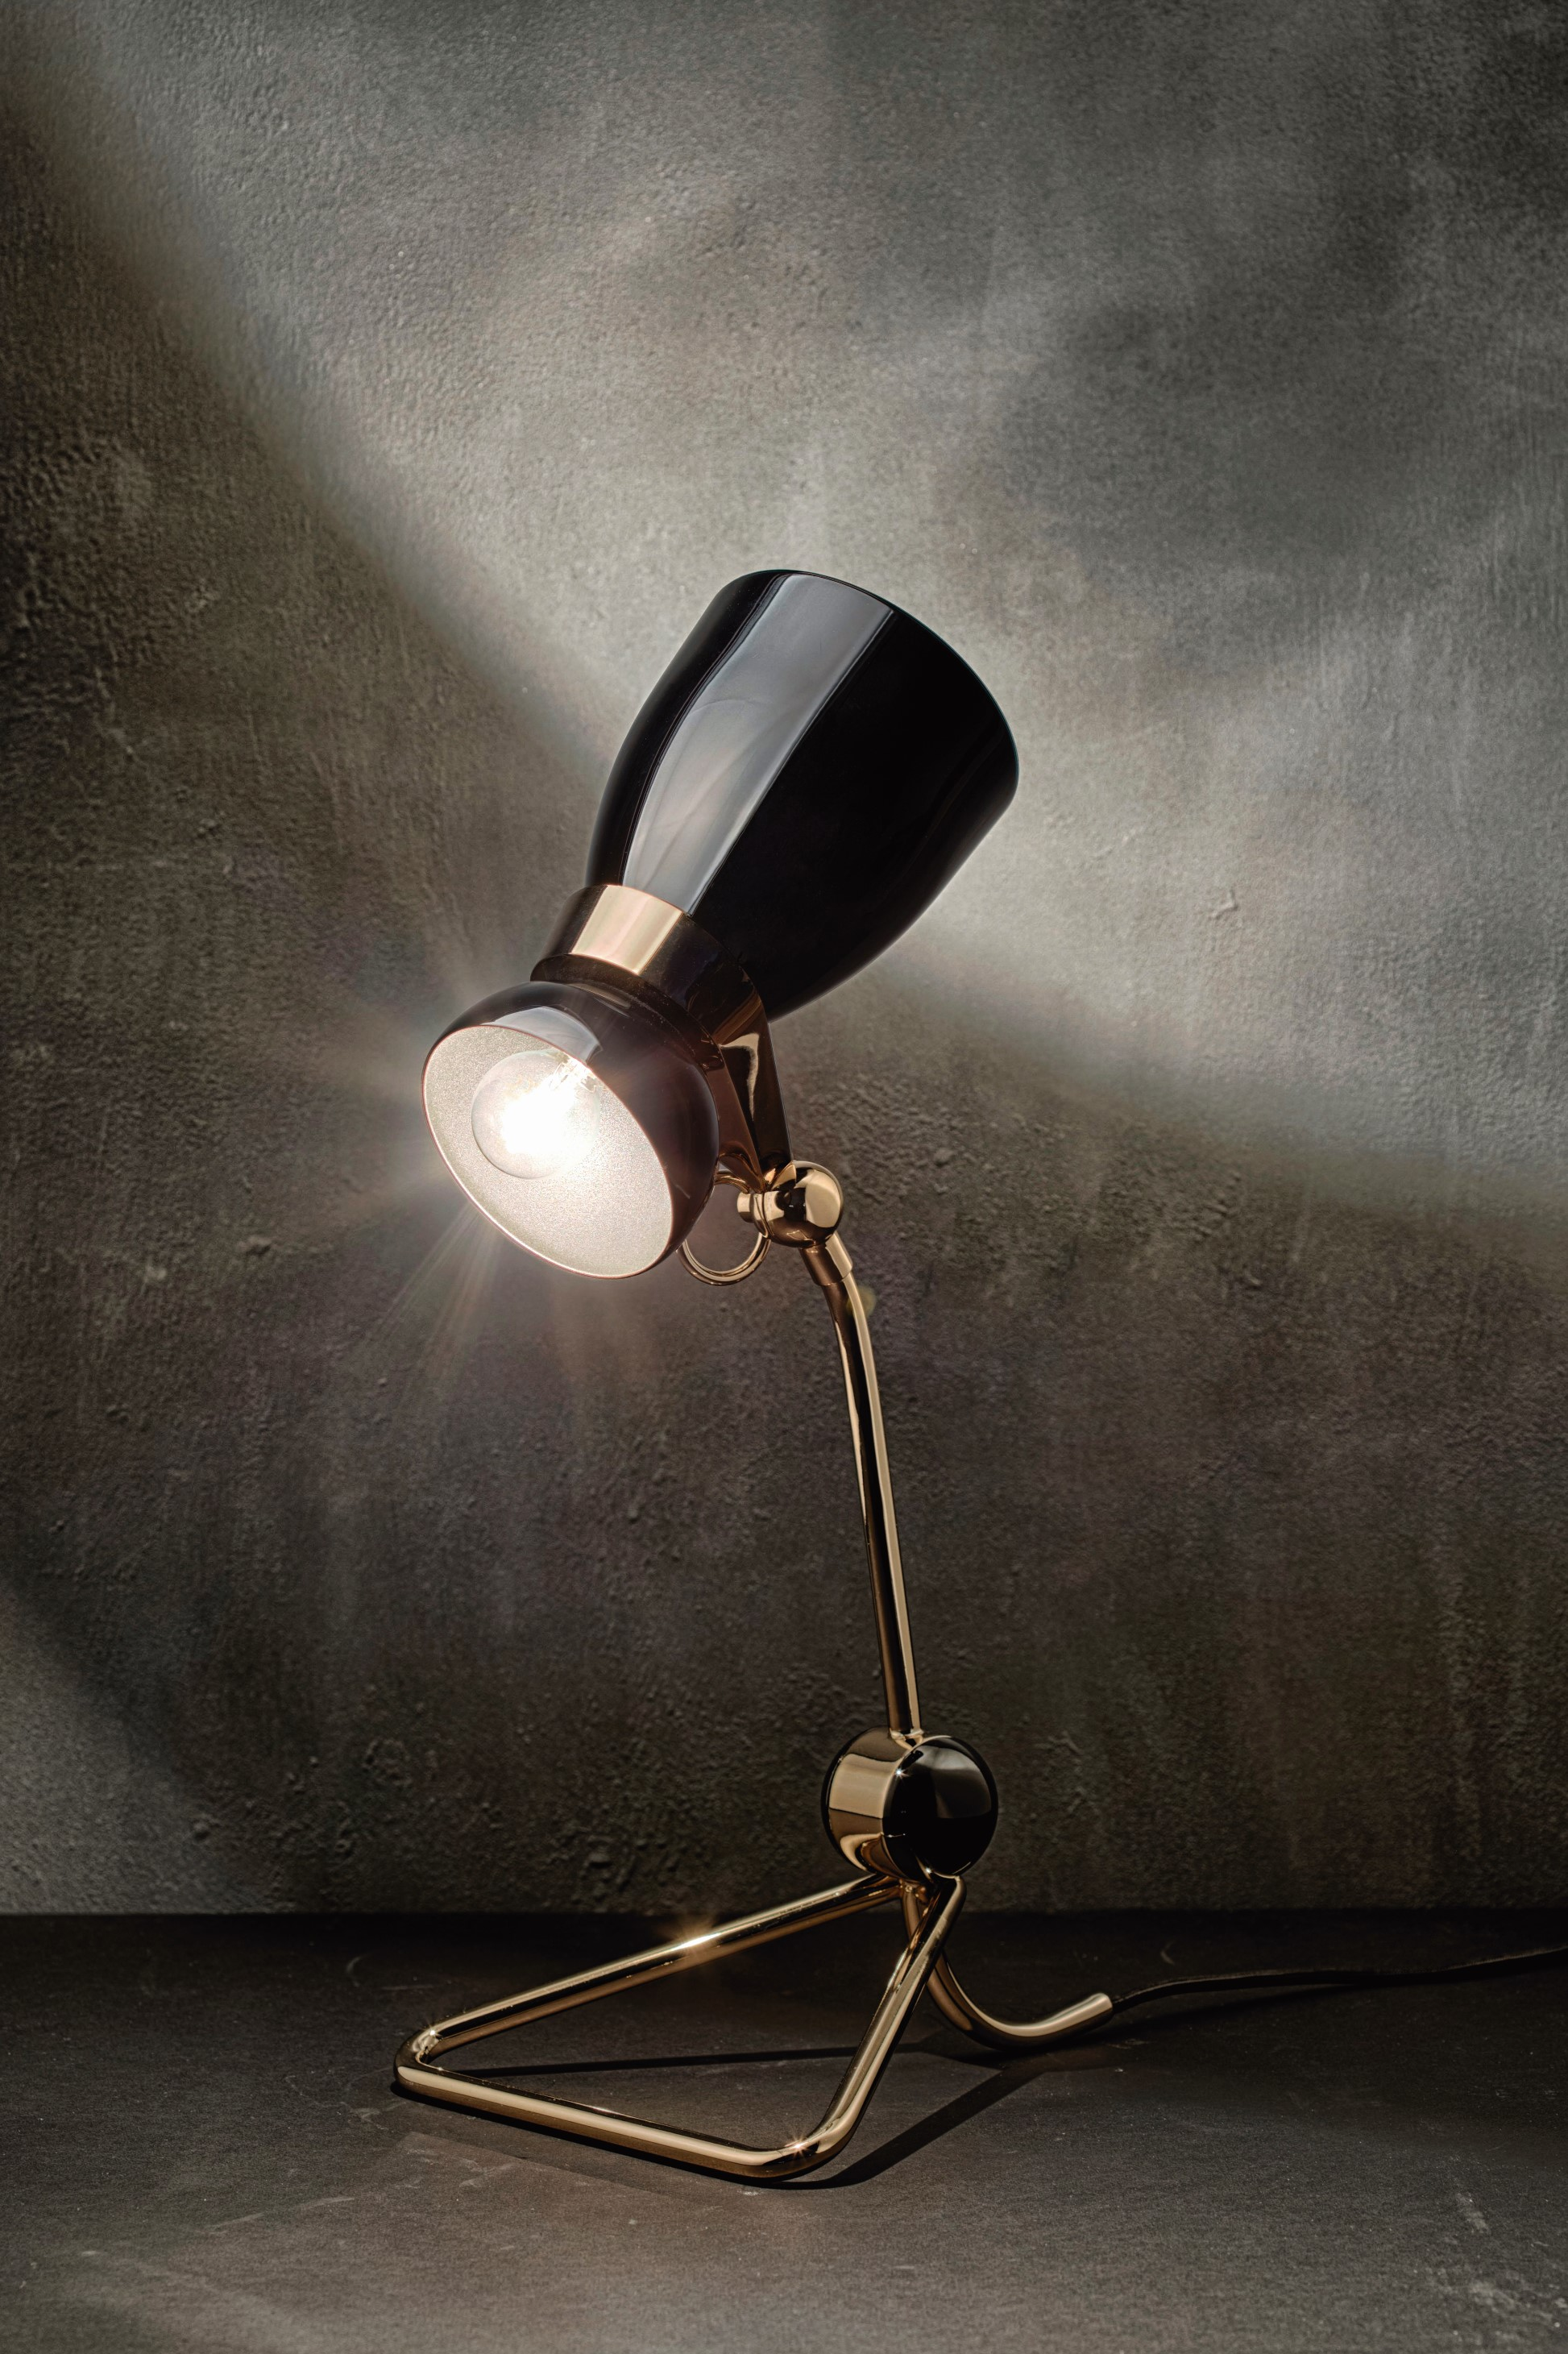 into lighting. Amy Winehouse A Jazz Icon Transformed Into Mid-century Lighting Design 16 Mid-